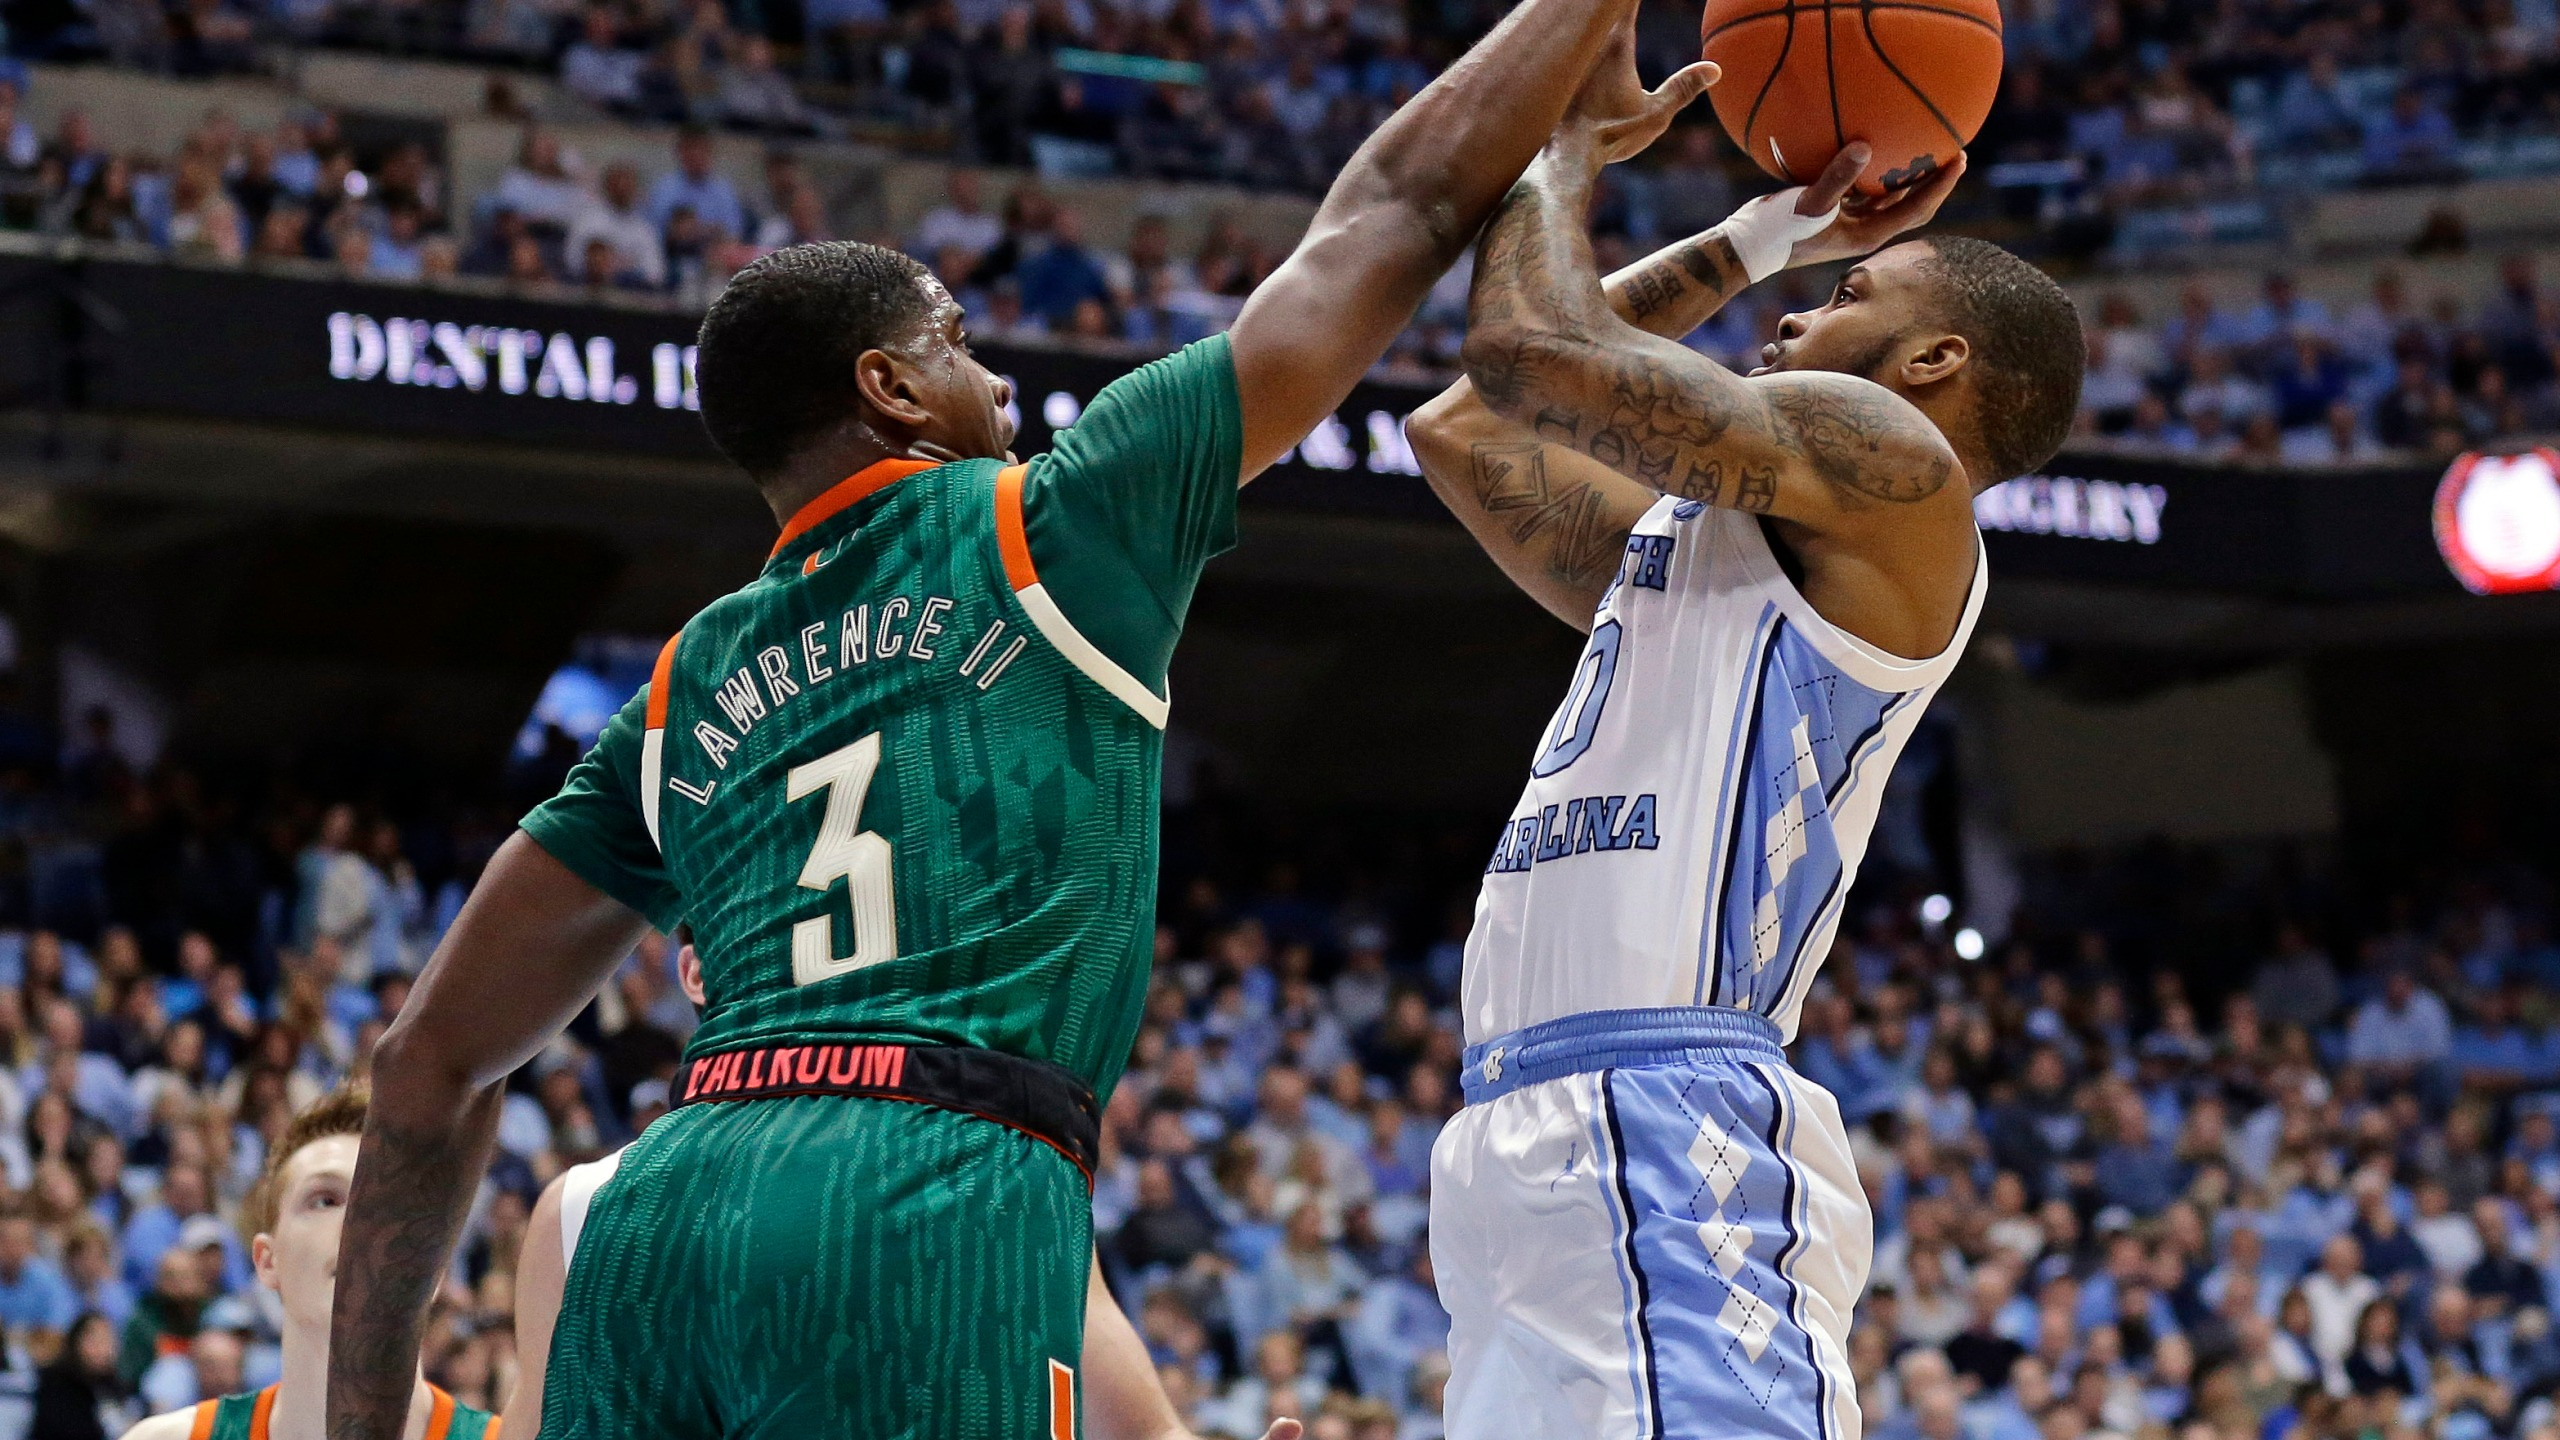 Miami_North_Carolina_Basketball_46135-159532.jpg97587366